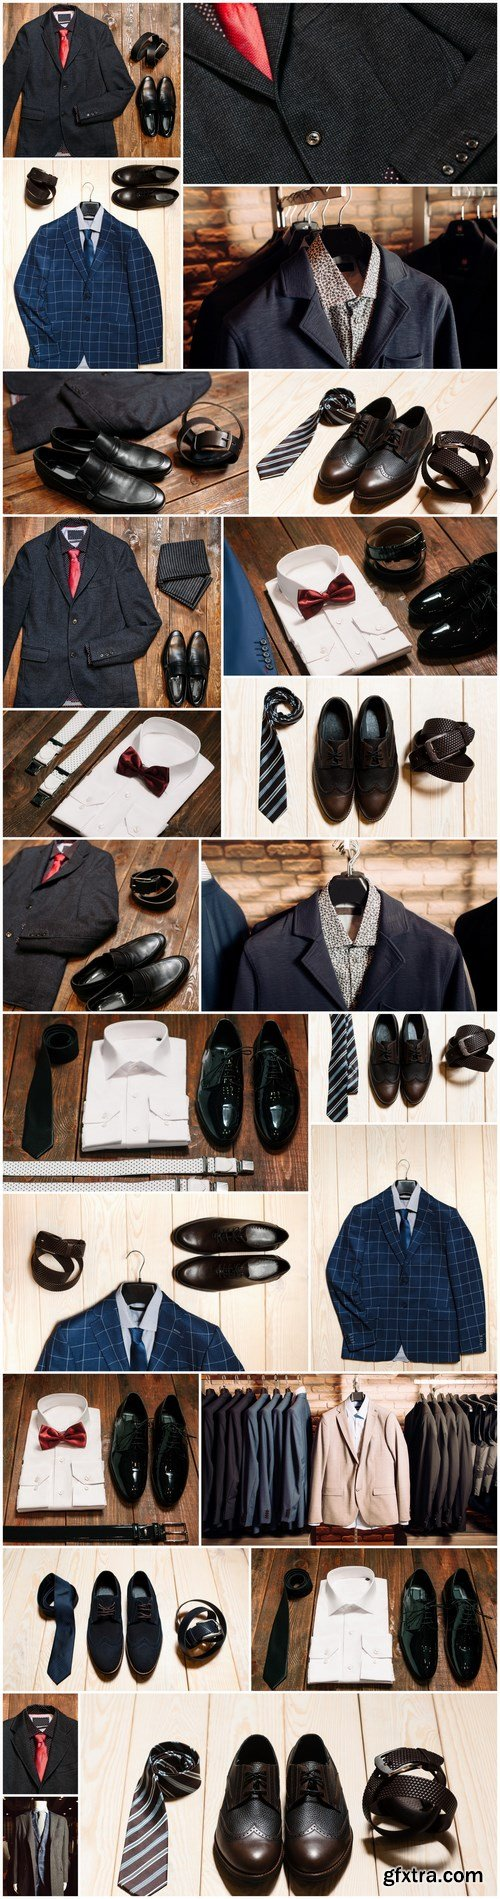 Men\'s Clothing and Accessories 2 - 23xUHQ JPEG Photo Stock